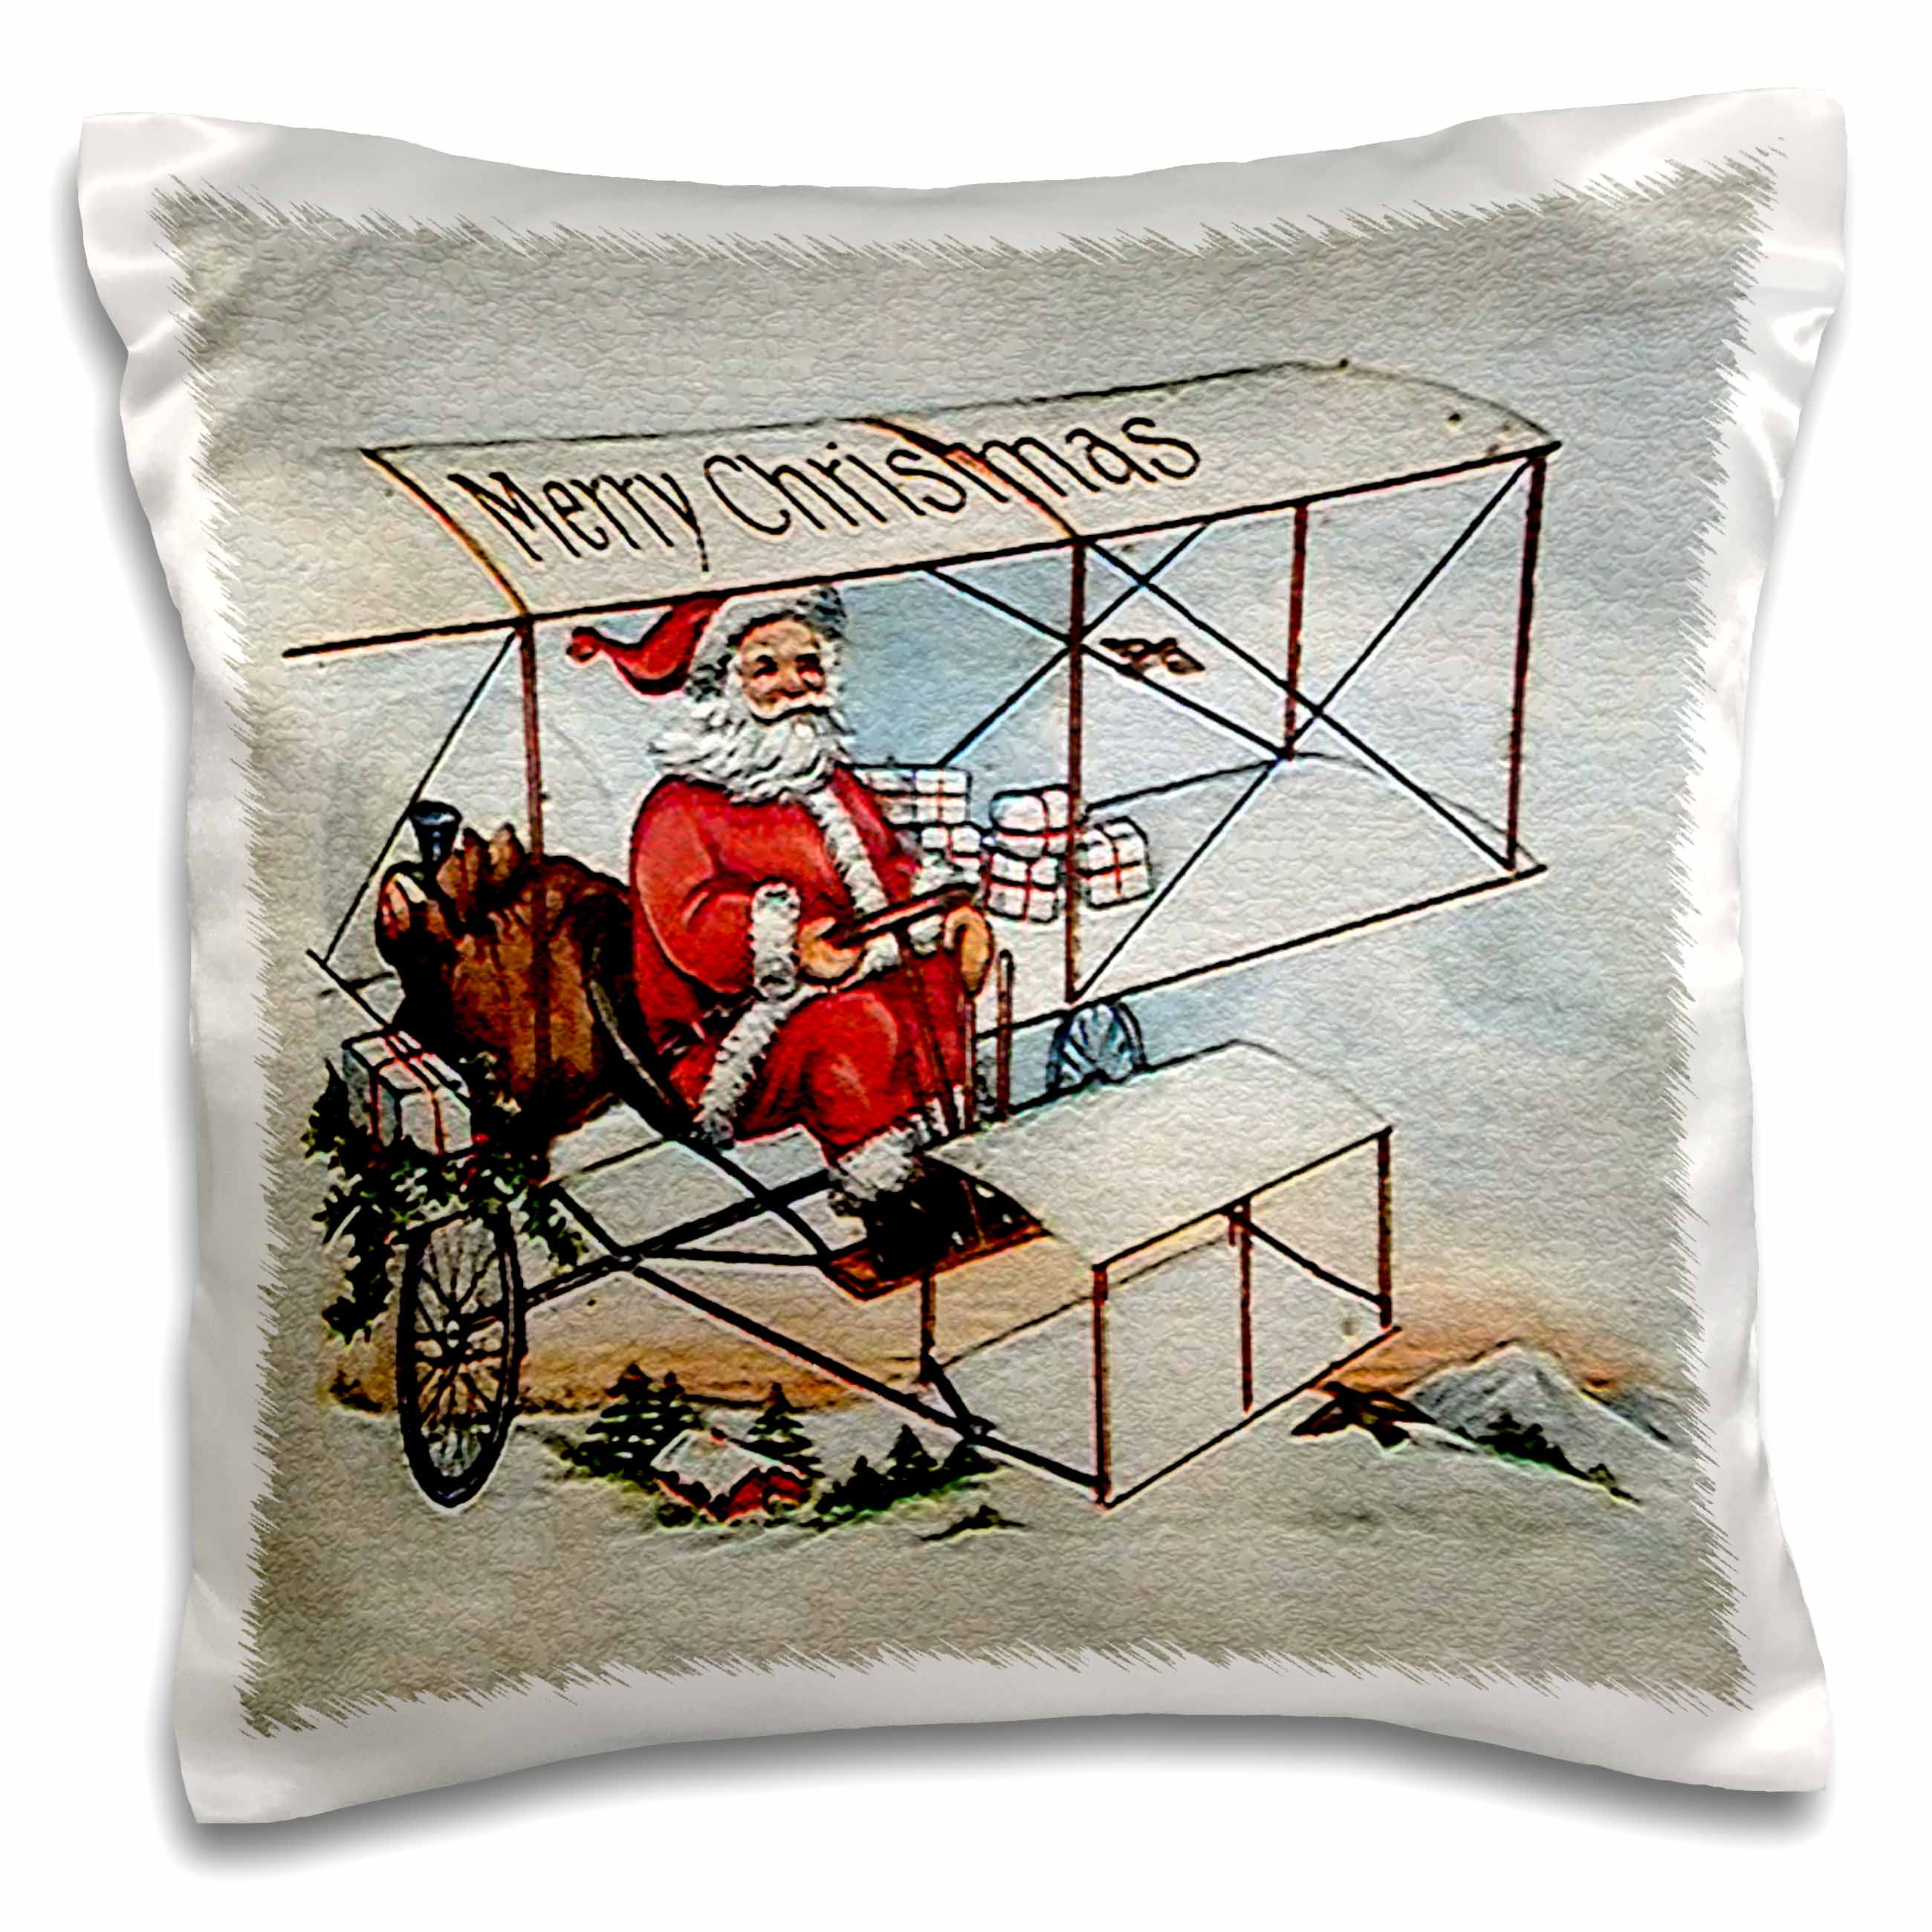 3dRose Merry Christmas Santa Flying a Vintage Box Kite Plane Image, Pillow Case, 16 by 16-inch